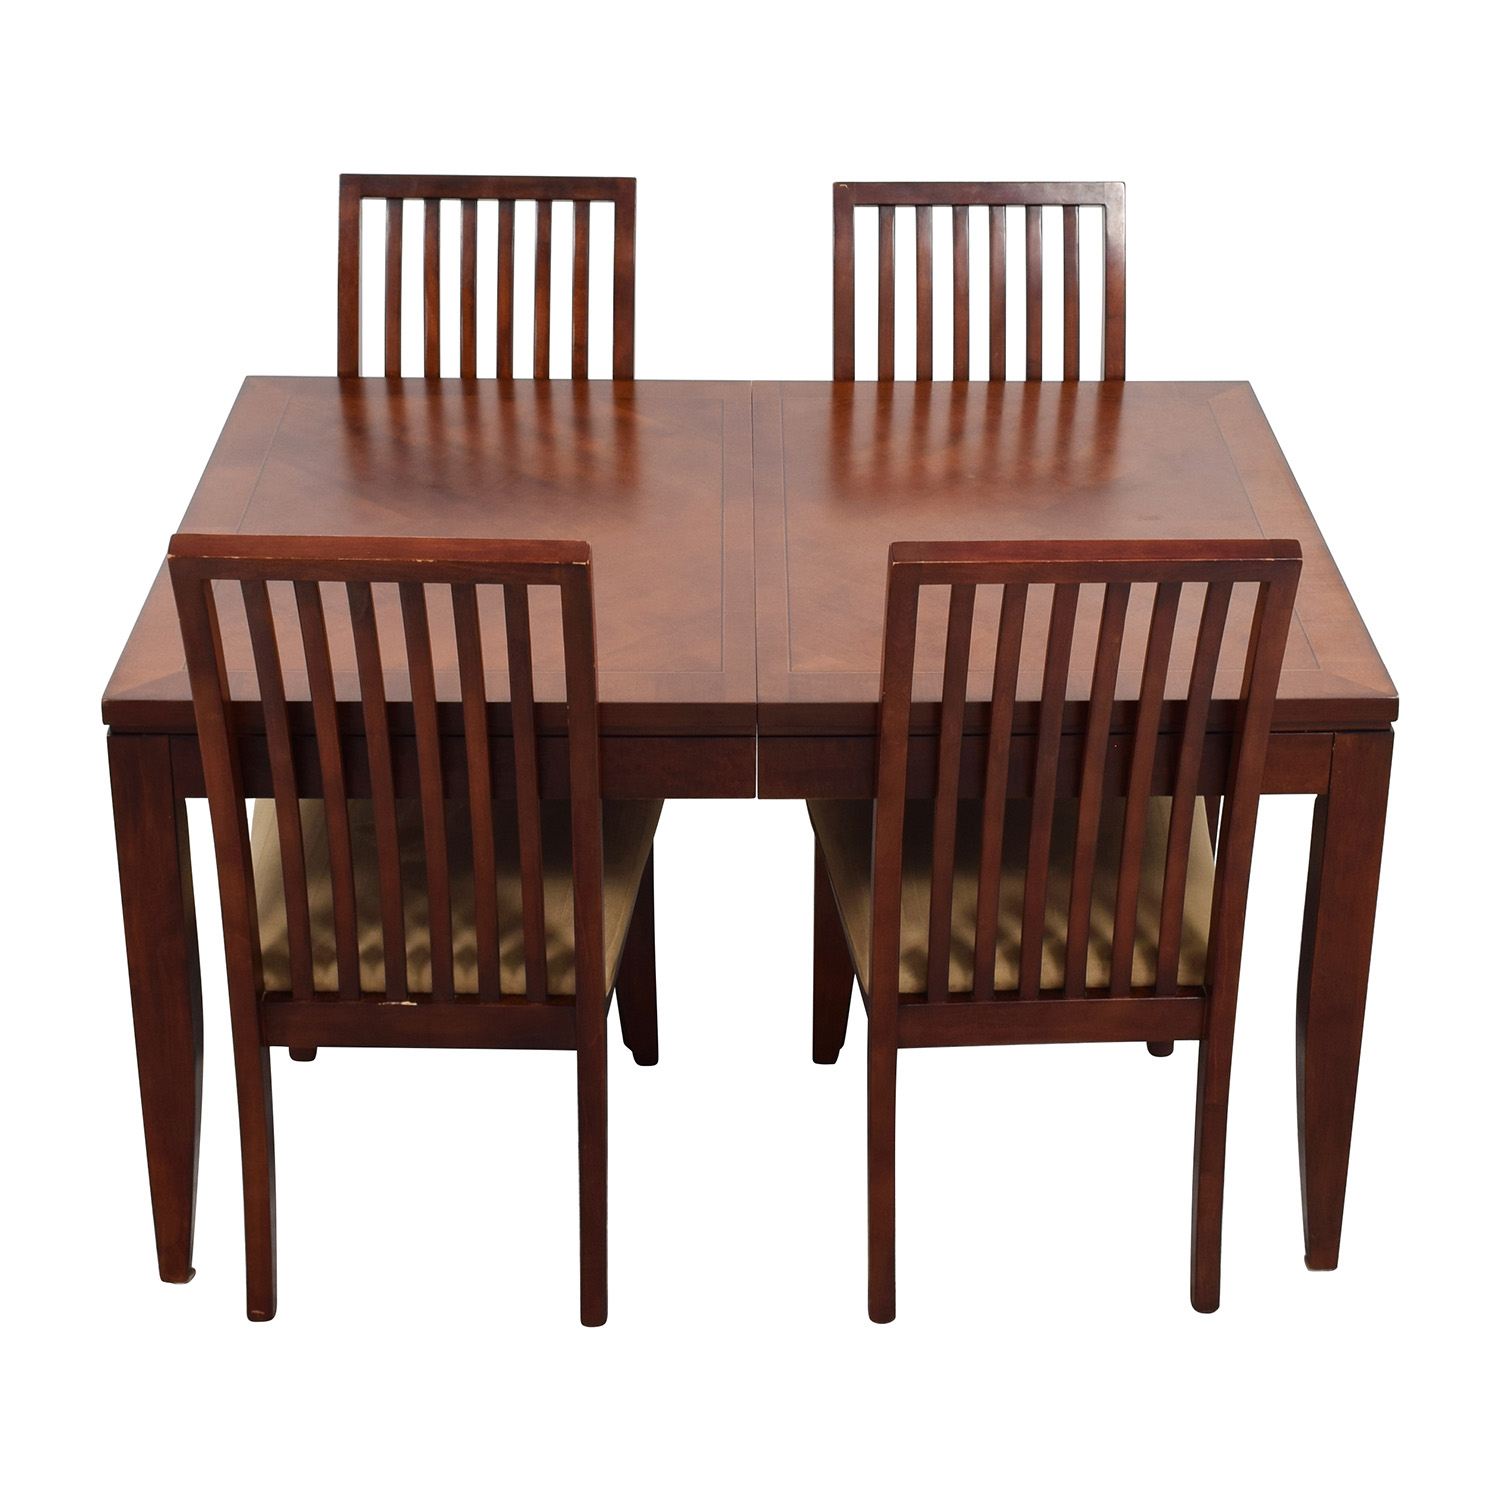 83 OFF Macys Macys Metropolitan Dining Set with Four Chairs